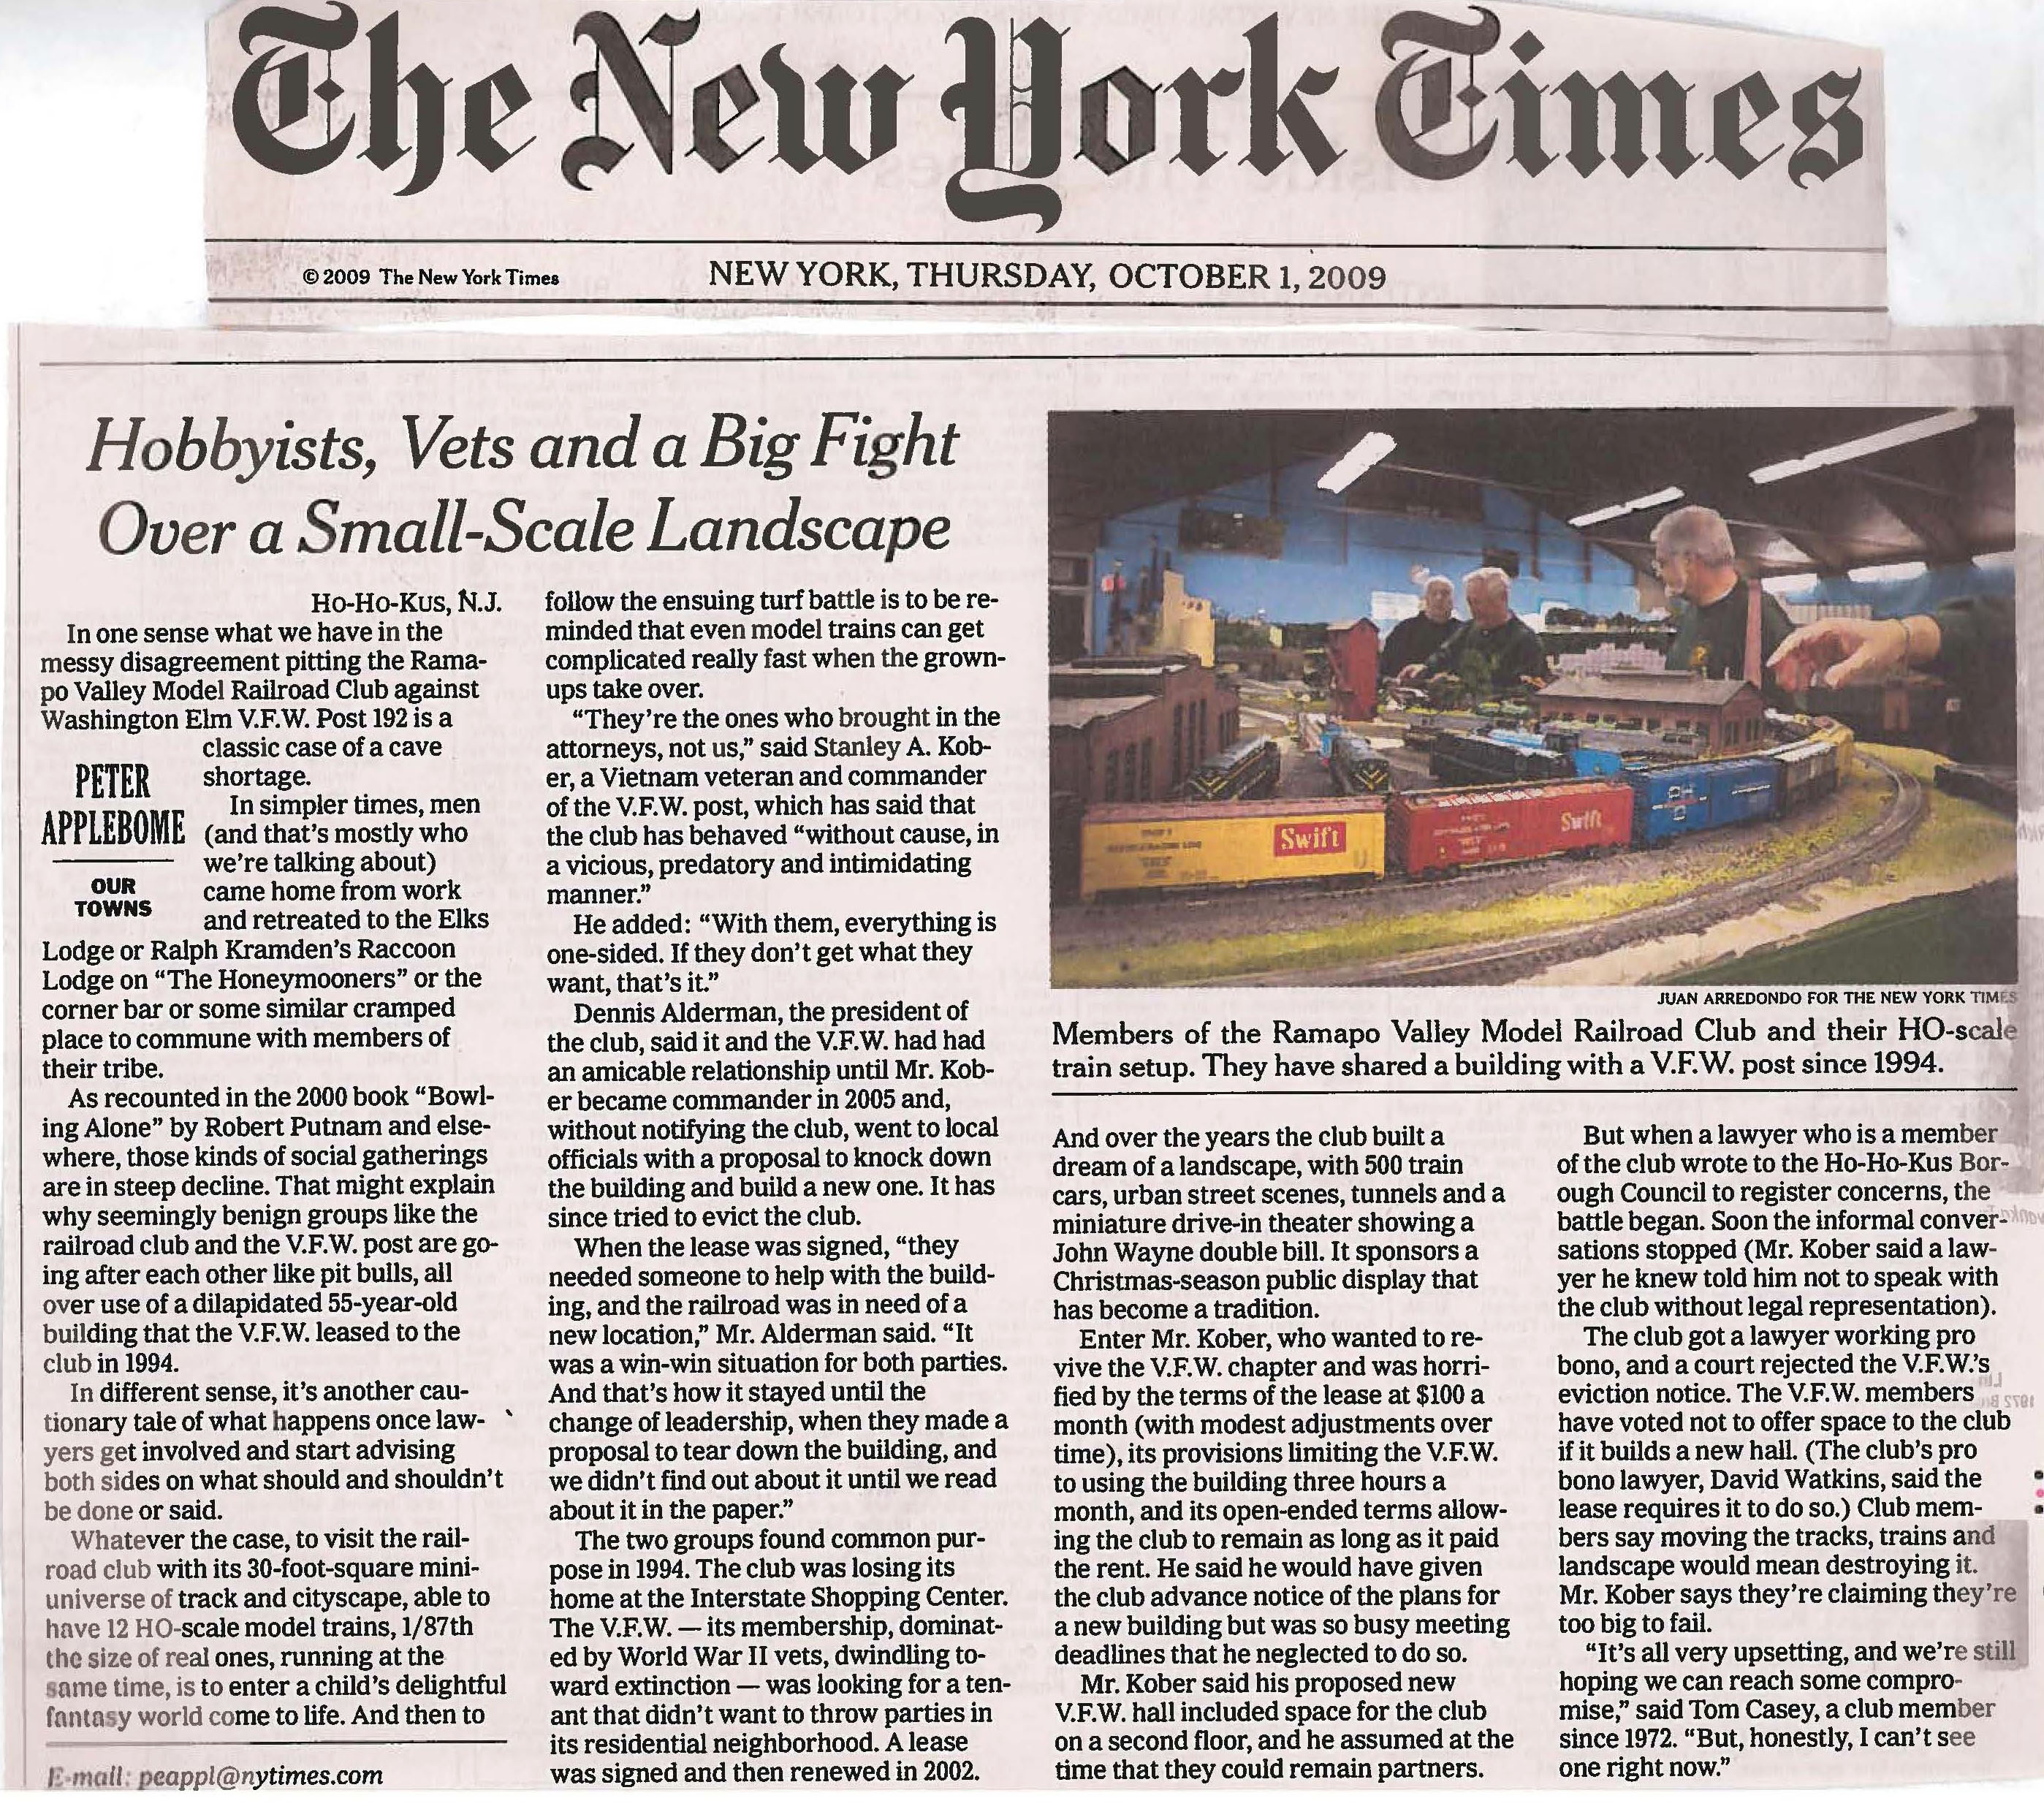 a summary of an article us cites race in halting law over voter id published in the new york times Kavanaugh over the top, headed for confirmation  carried out by those already here or shortly to enter the united states  jfk airport in new york and the new york stock exchange.